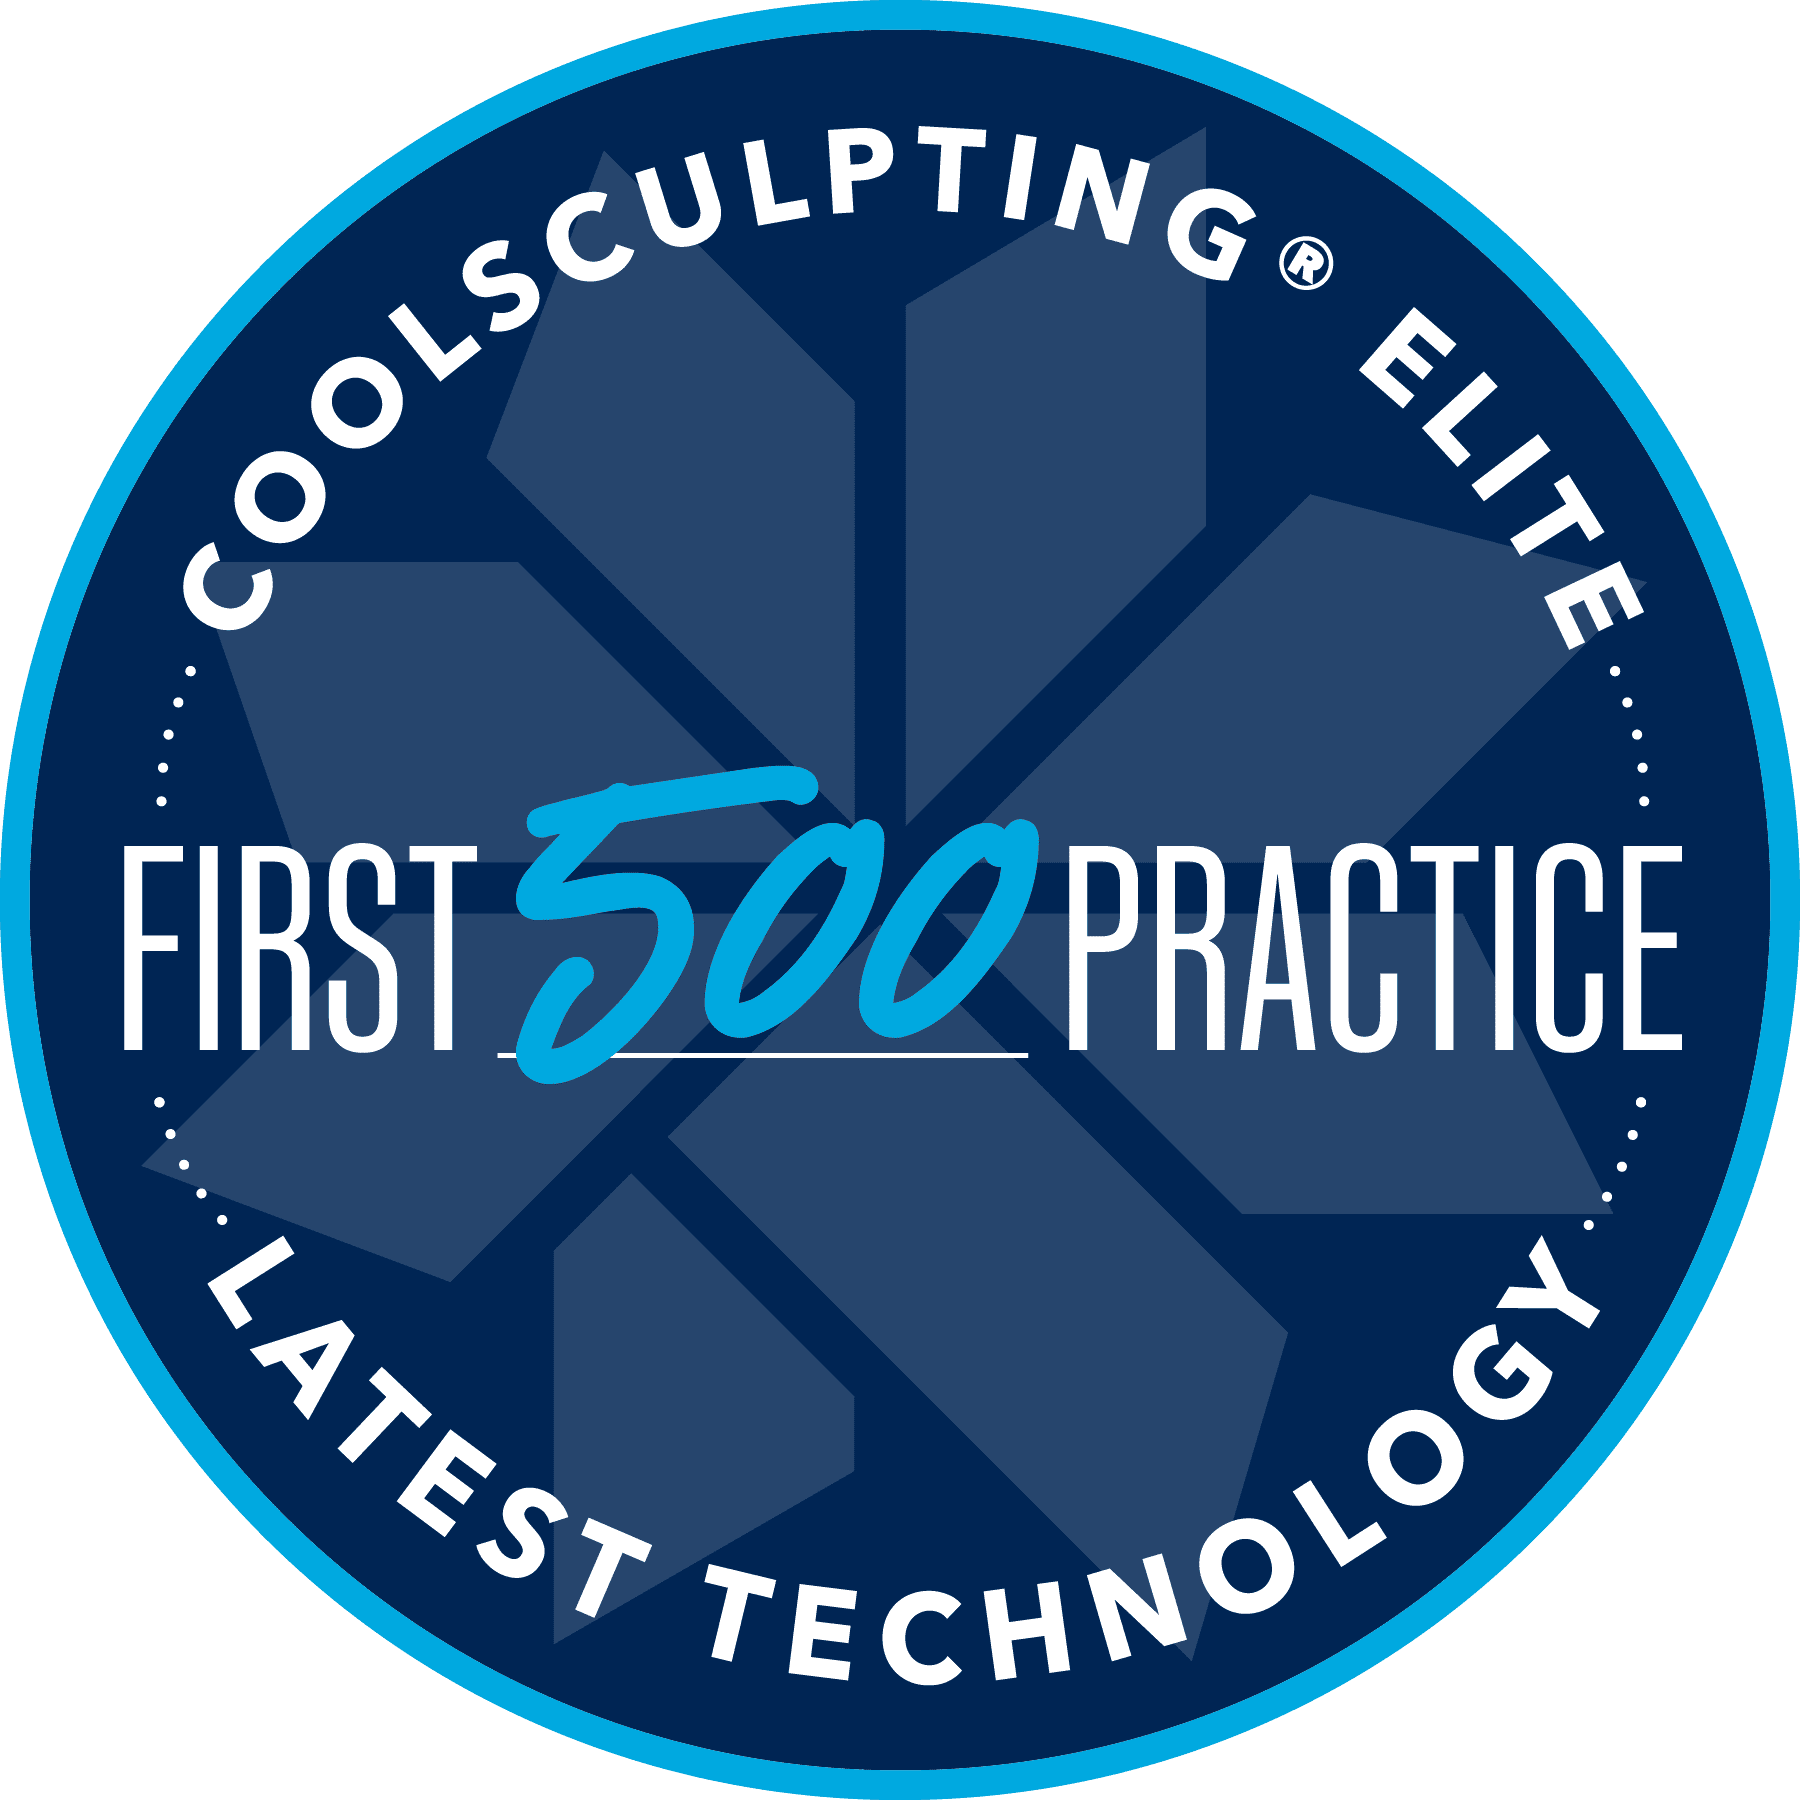 First 500 Practice logo